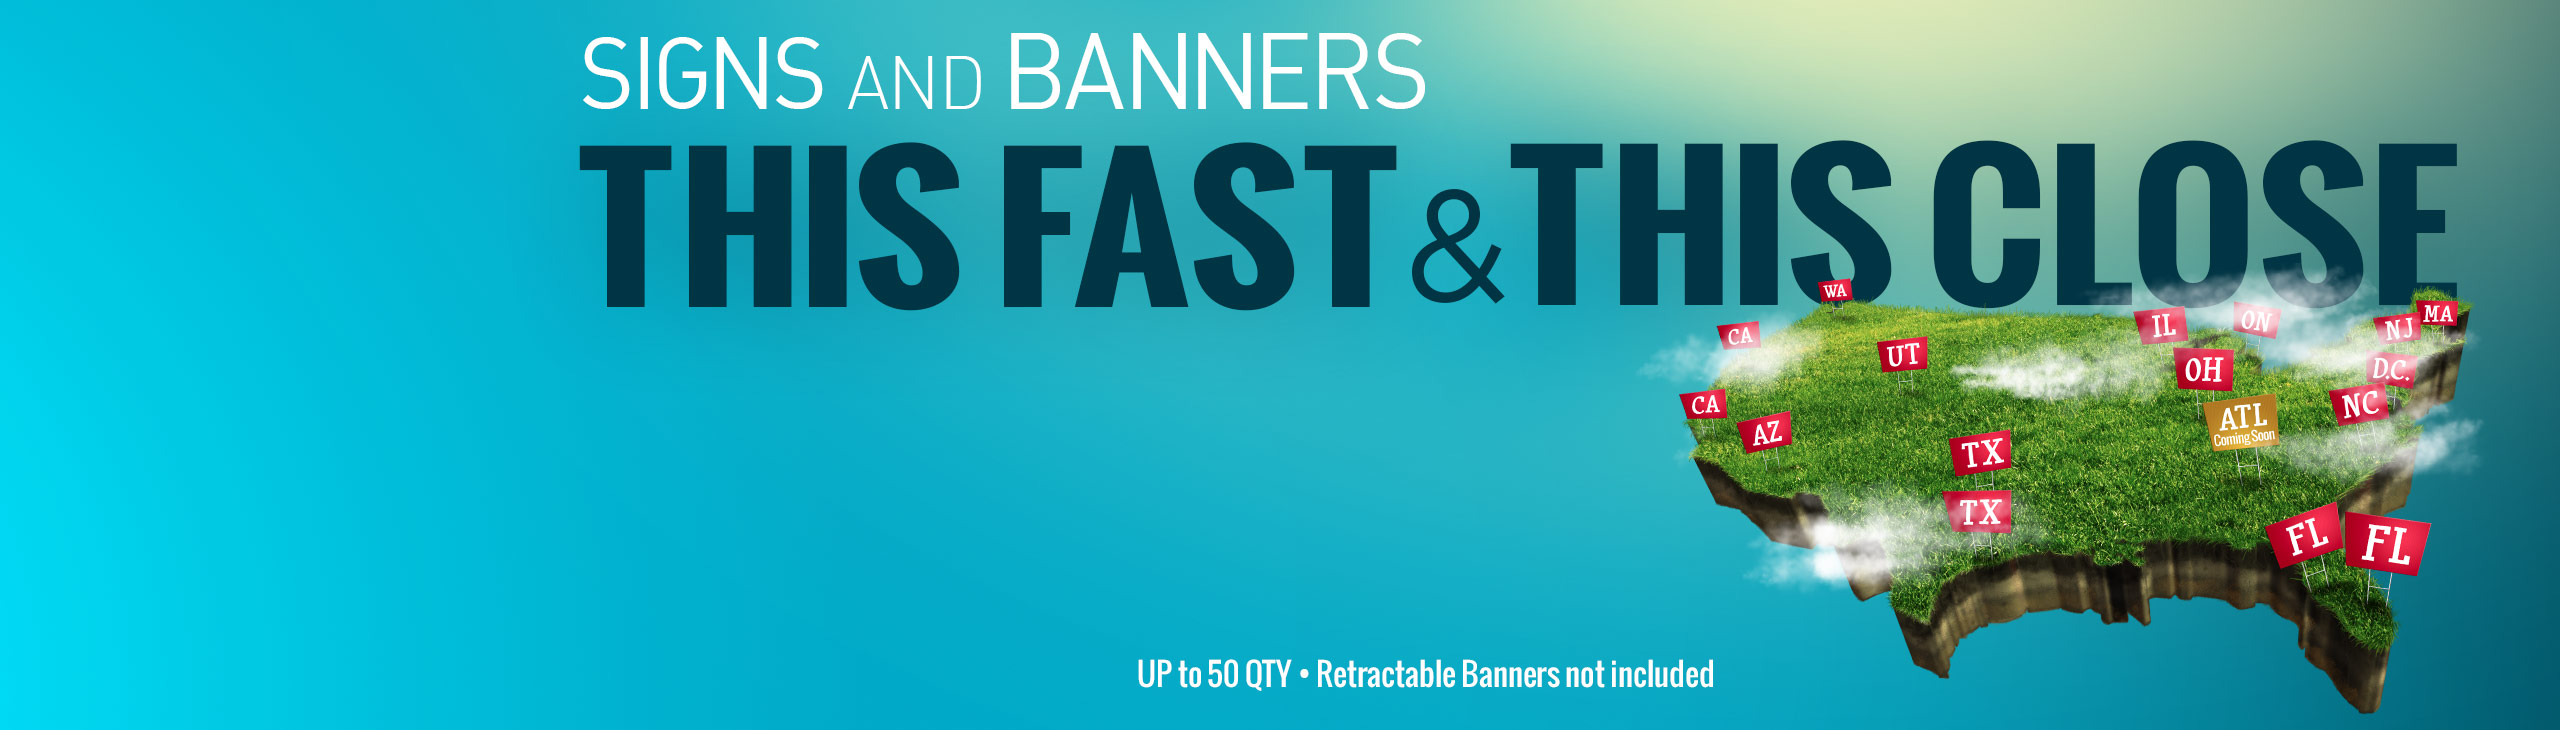 Retractable banners full color printing